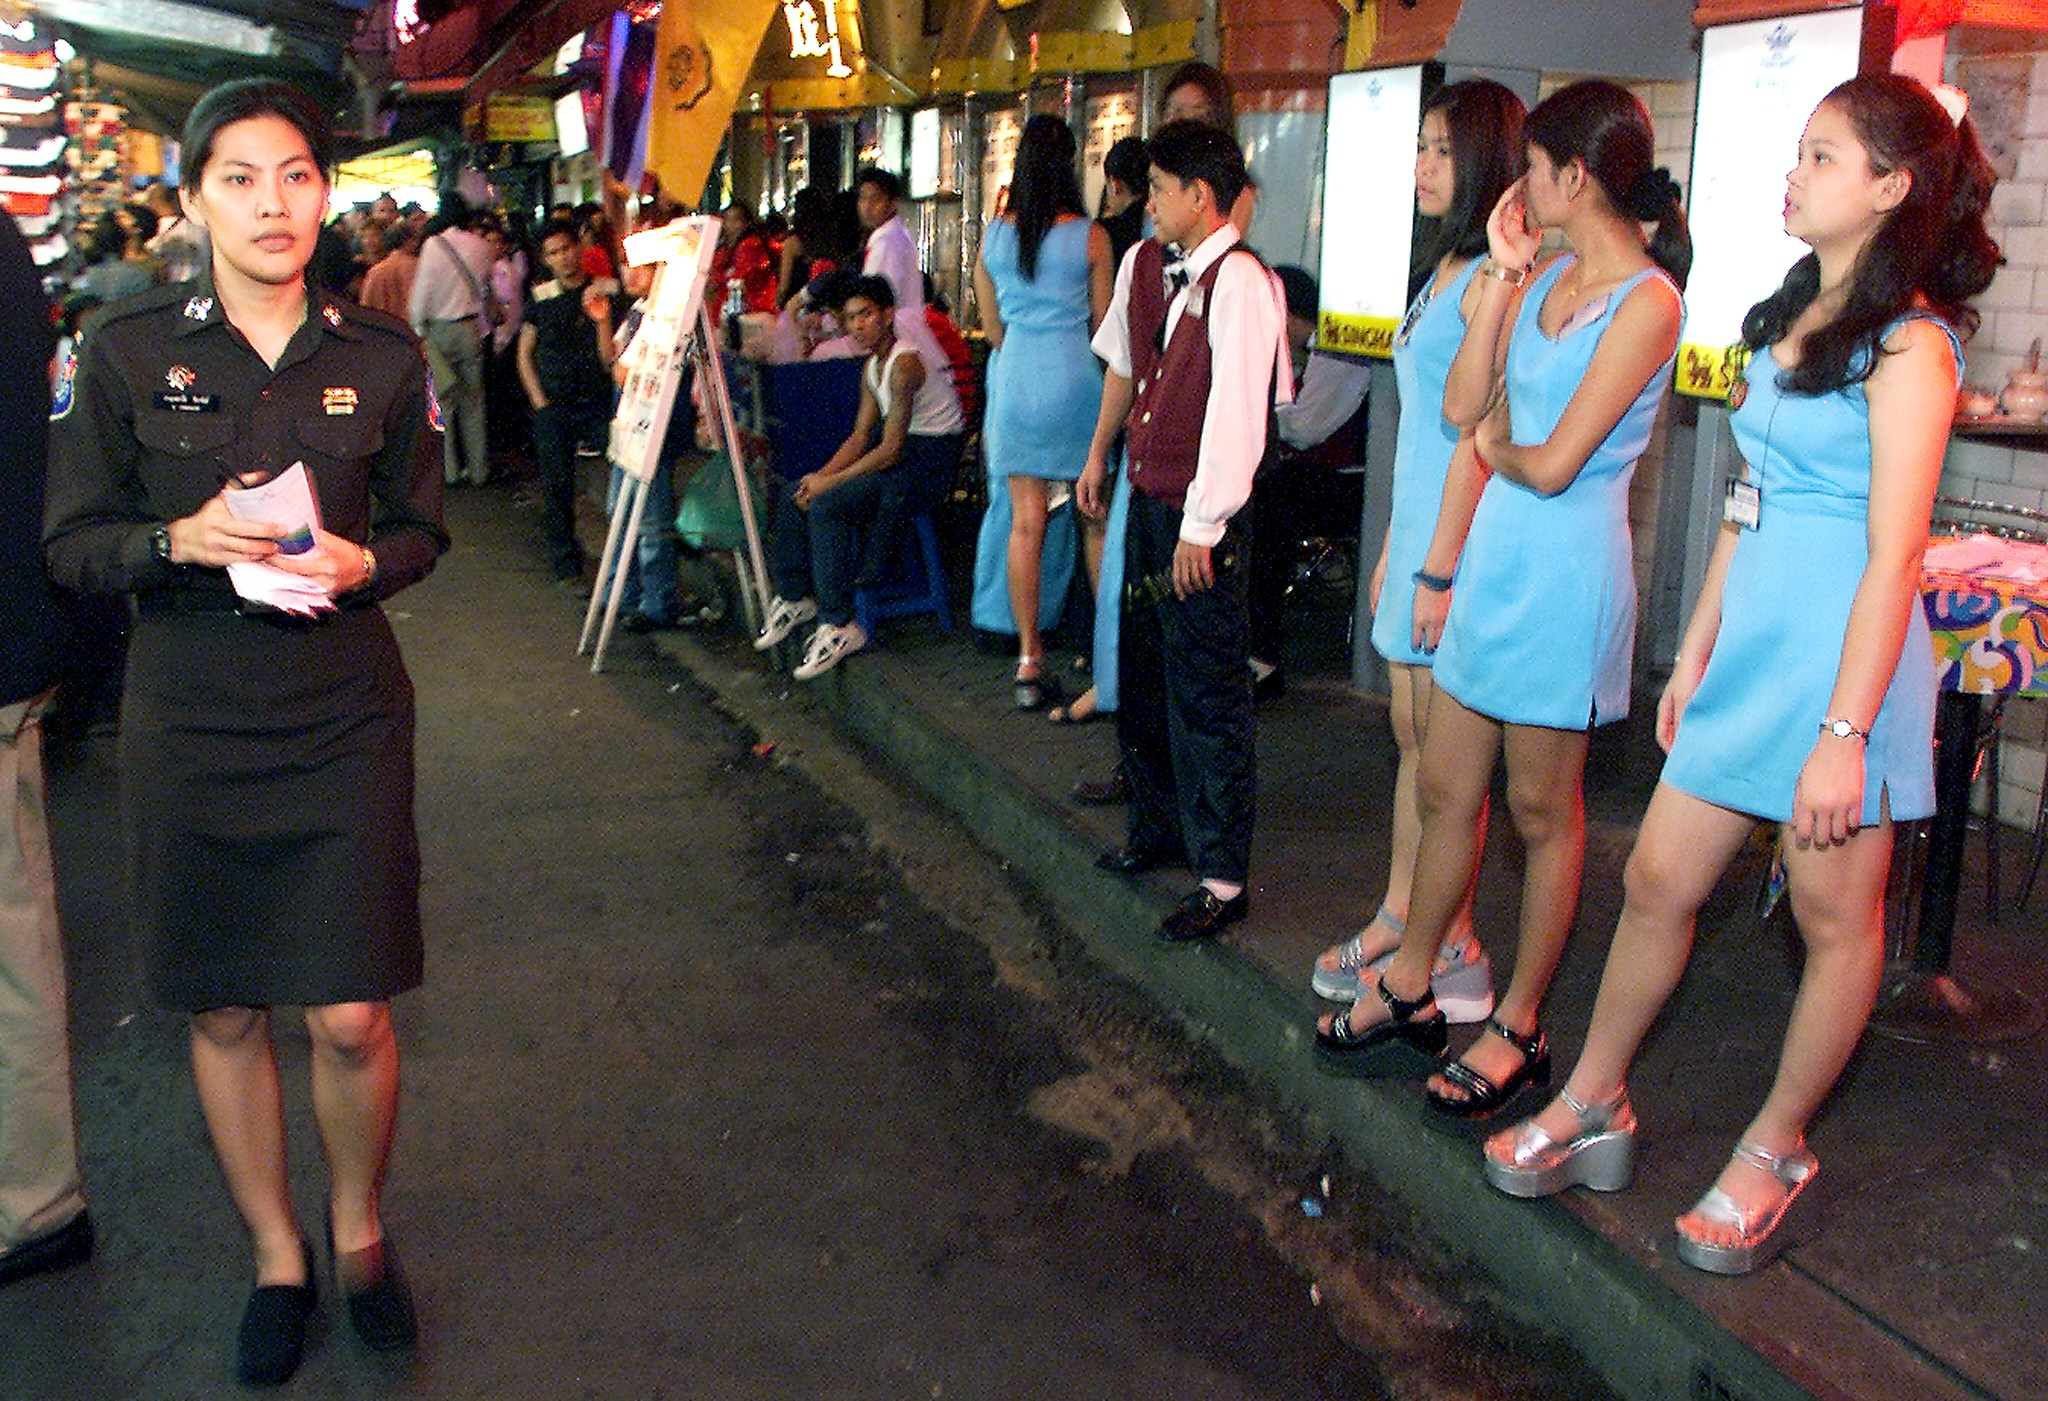 Thai Tourist Police Corporal Kanjanawadee Pongkhunt known as 'Jinny' (L) patrols past Thai bar girls in Bangkok's infamous red-light district of Patpong. Photo: Emmanuel Dunand/AFP